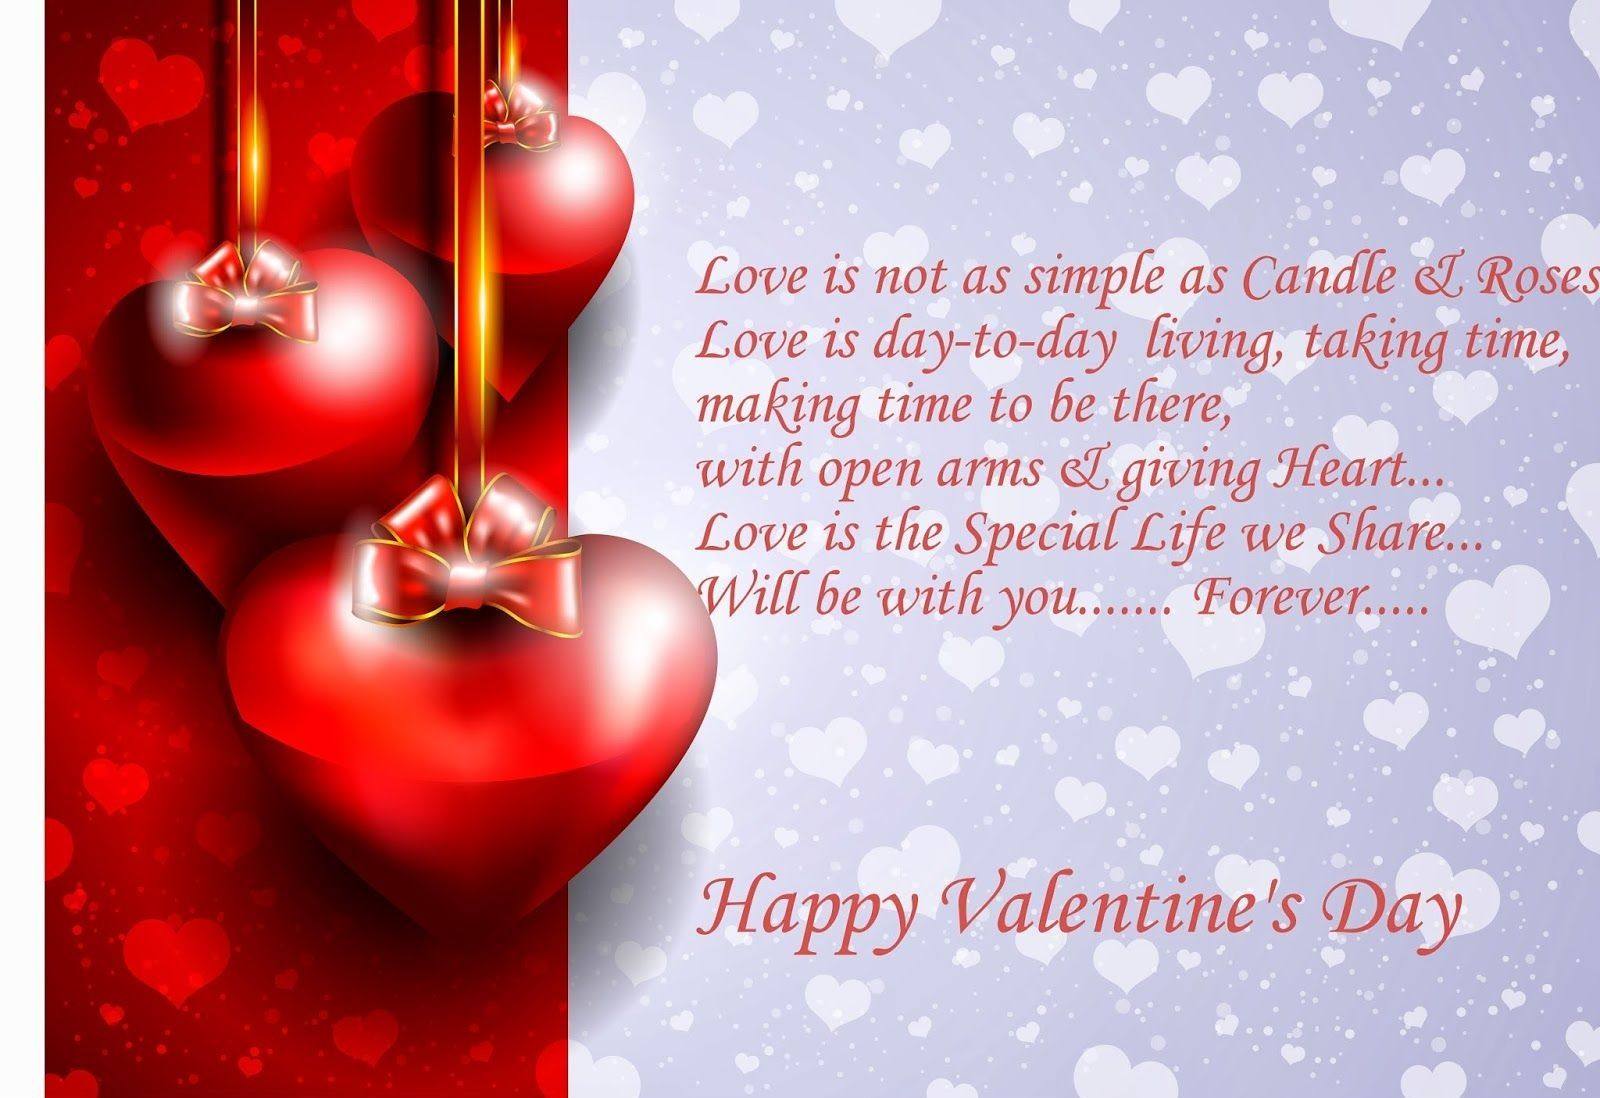 Valentines day couple images valentines day images pinterest happy valentine day 2018 quotesideaswallpaperimageswishes love quotes sms messages whatapp status for valentines day kristyandbryce Gallery